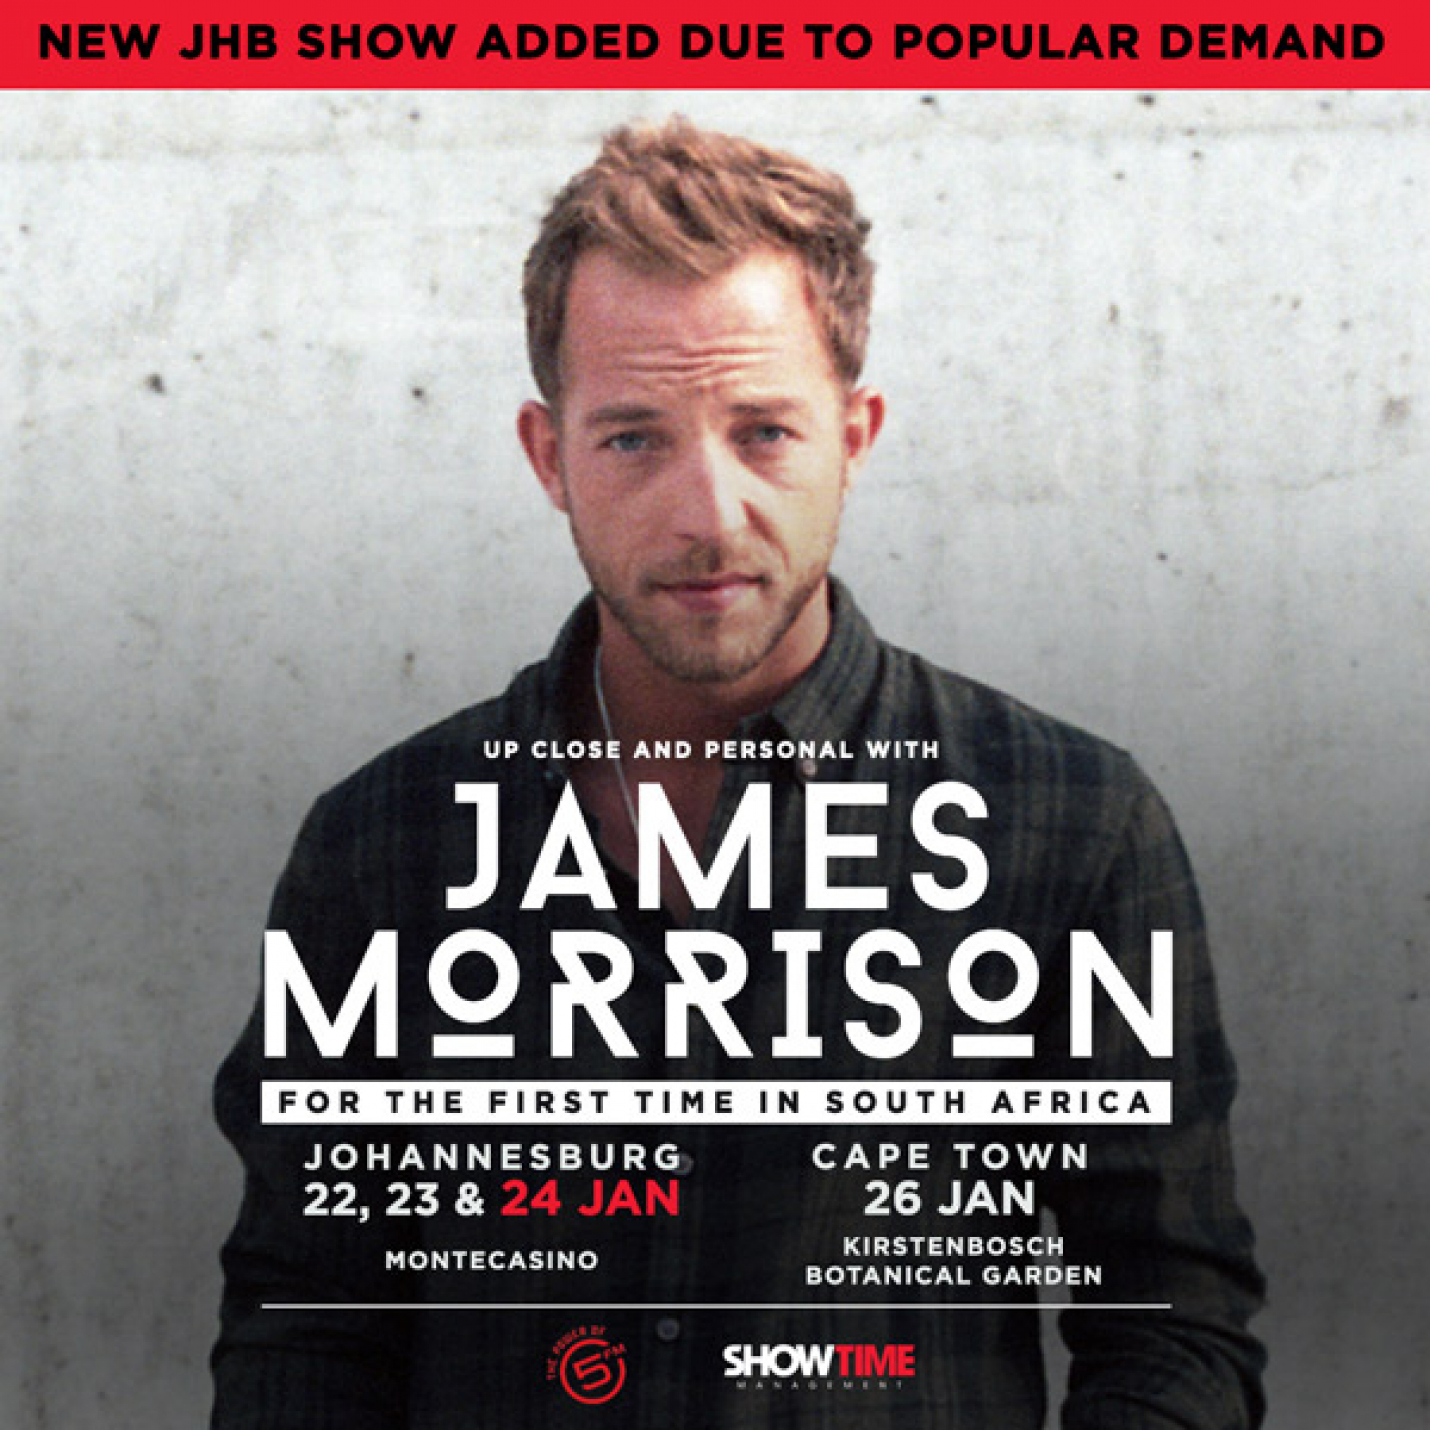 Extra James Morrison Jhb Concert & Support Act Announced